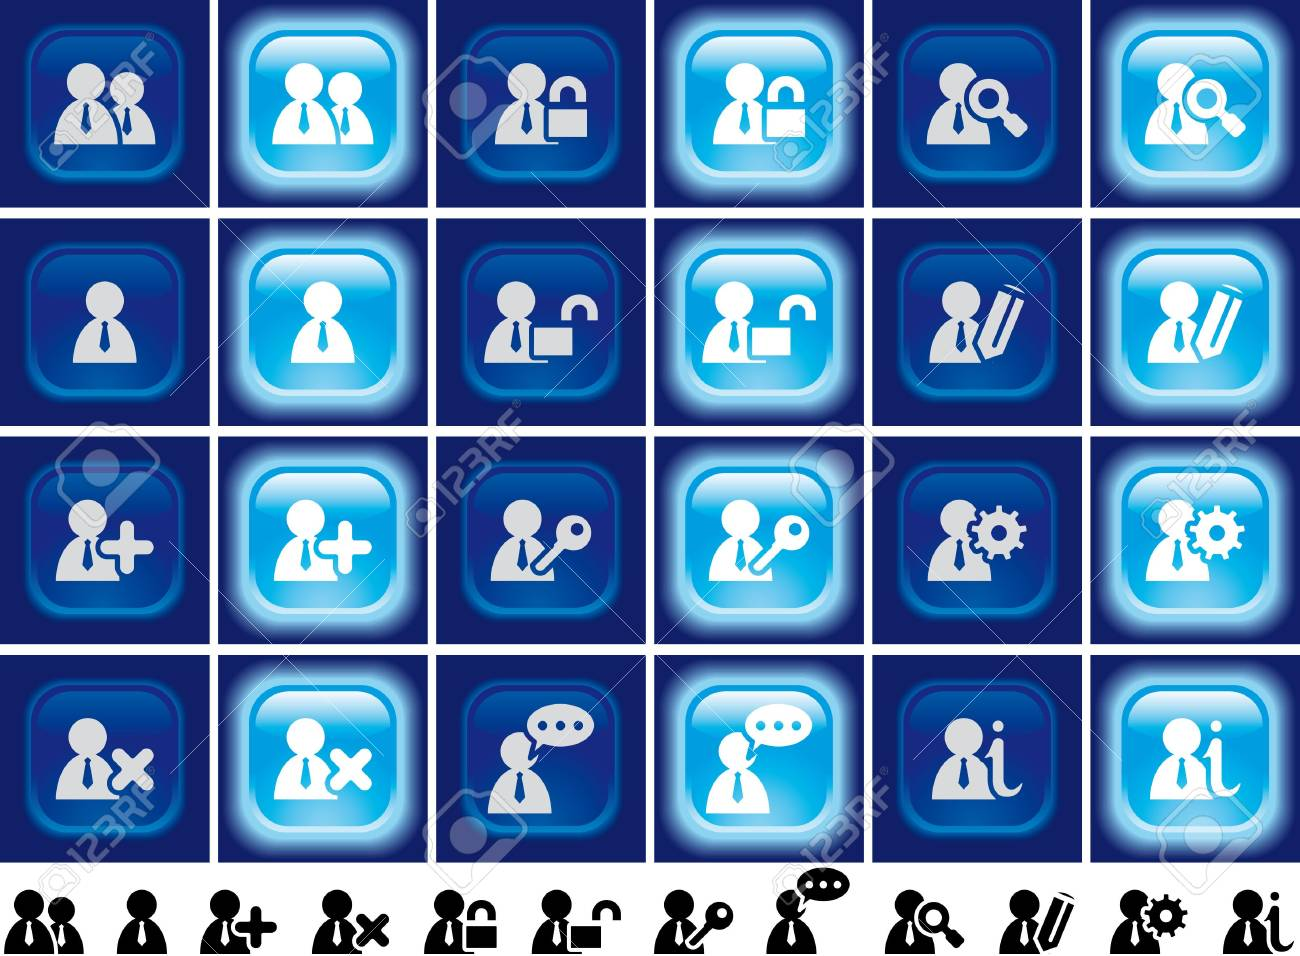 User buttons with light effect light off and on stock photo user buttons with light effect light off and on stock photo 5278066 biocorpaavc Choice Image